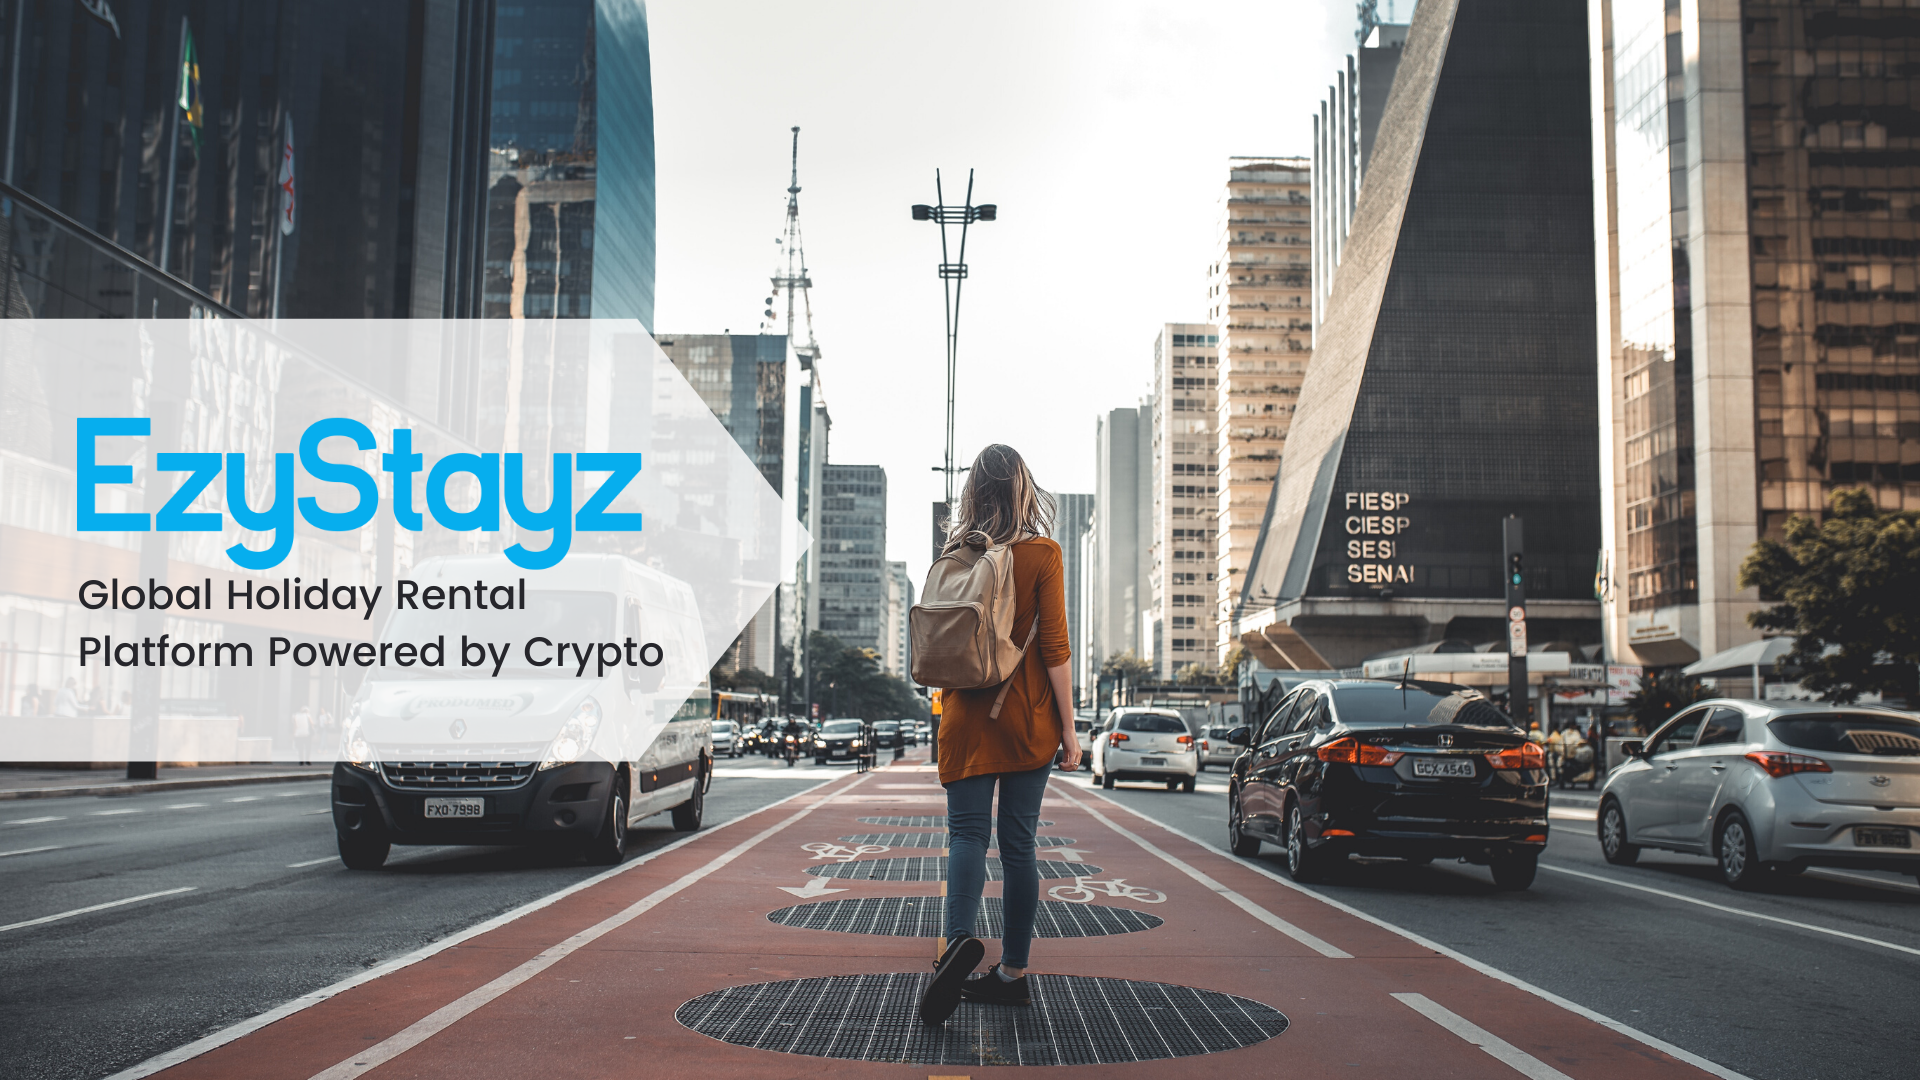 Holiday Booking Company EzyStayz to Offer Lower Fees by Integrating Blockchain Technology